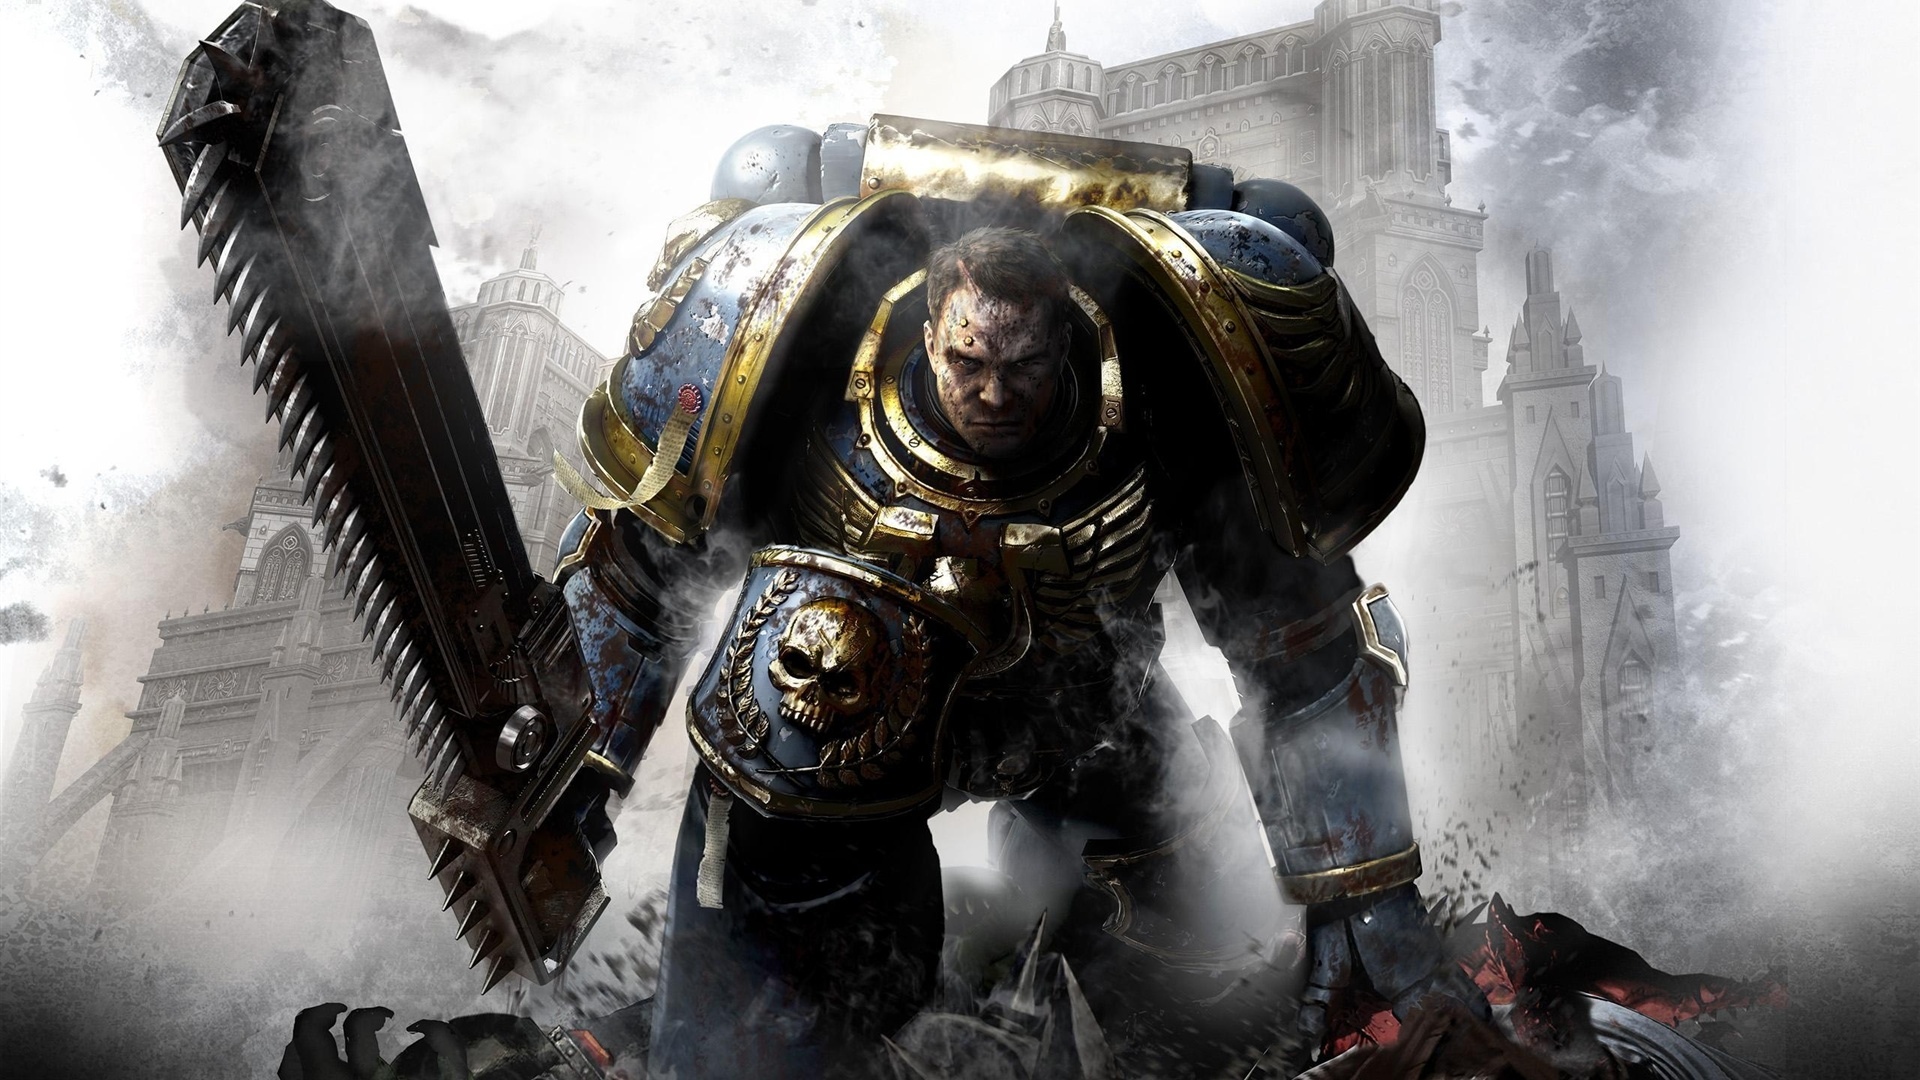 Sam Walton furthermore Holsworthy Infants School  Grade 2F 1972 furthermore Warhammer 40 000 Space Marine further 最終幻想:紛爭2 壁紙 1440x900 壁紙下載 HK Best moreover D Day Bunkers. on 1202 html